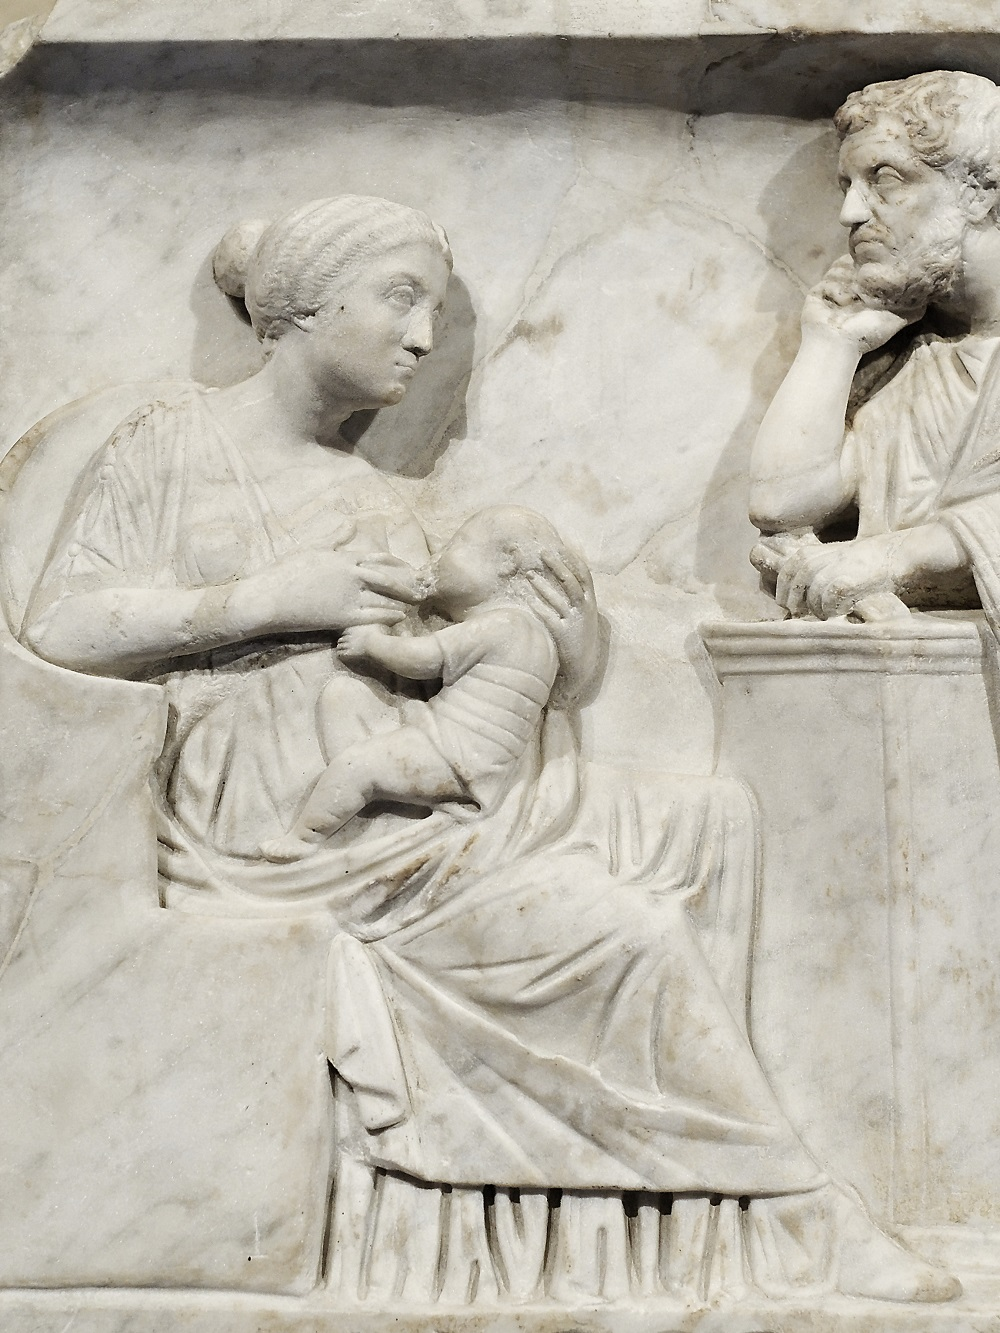 Detail of mother feeding child | Sarcophagus of Marcus Cornelius Statius, c.150CE, currently in the collection of the Louvre |  Image Source